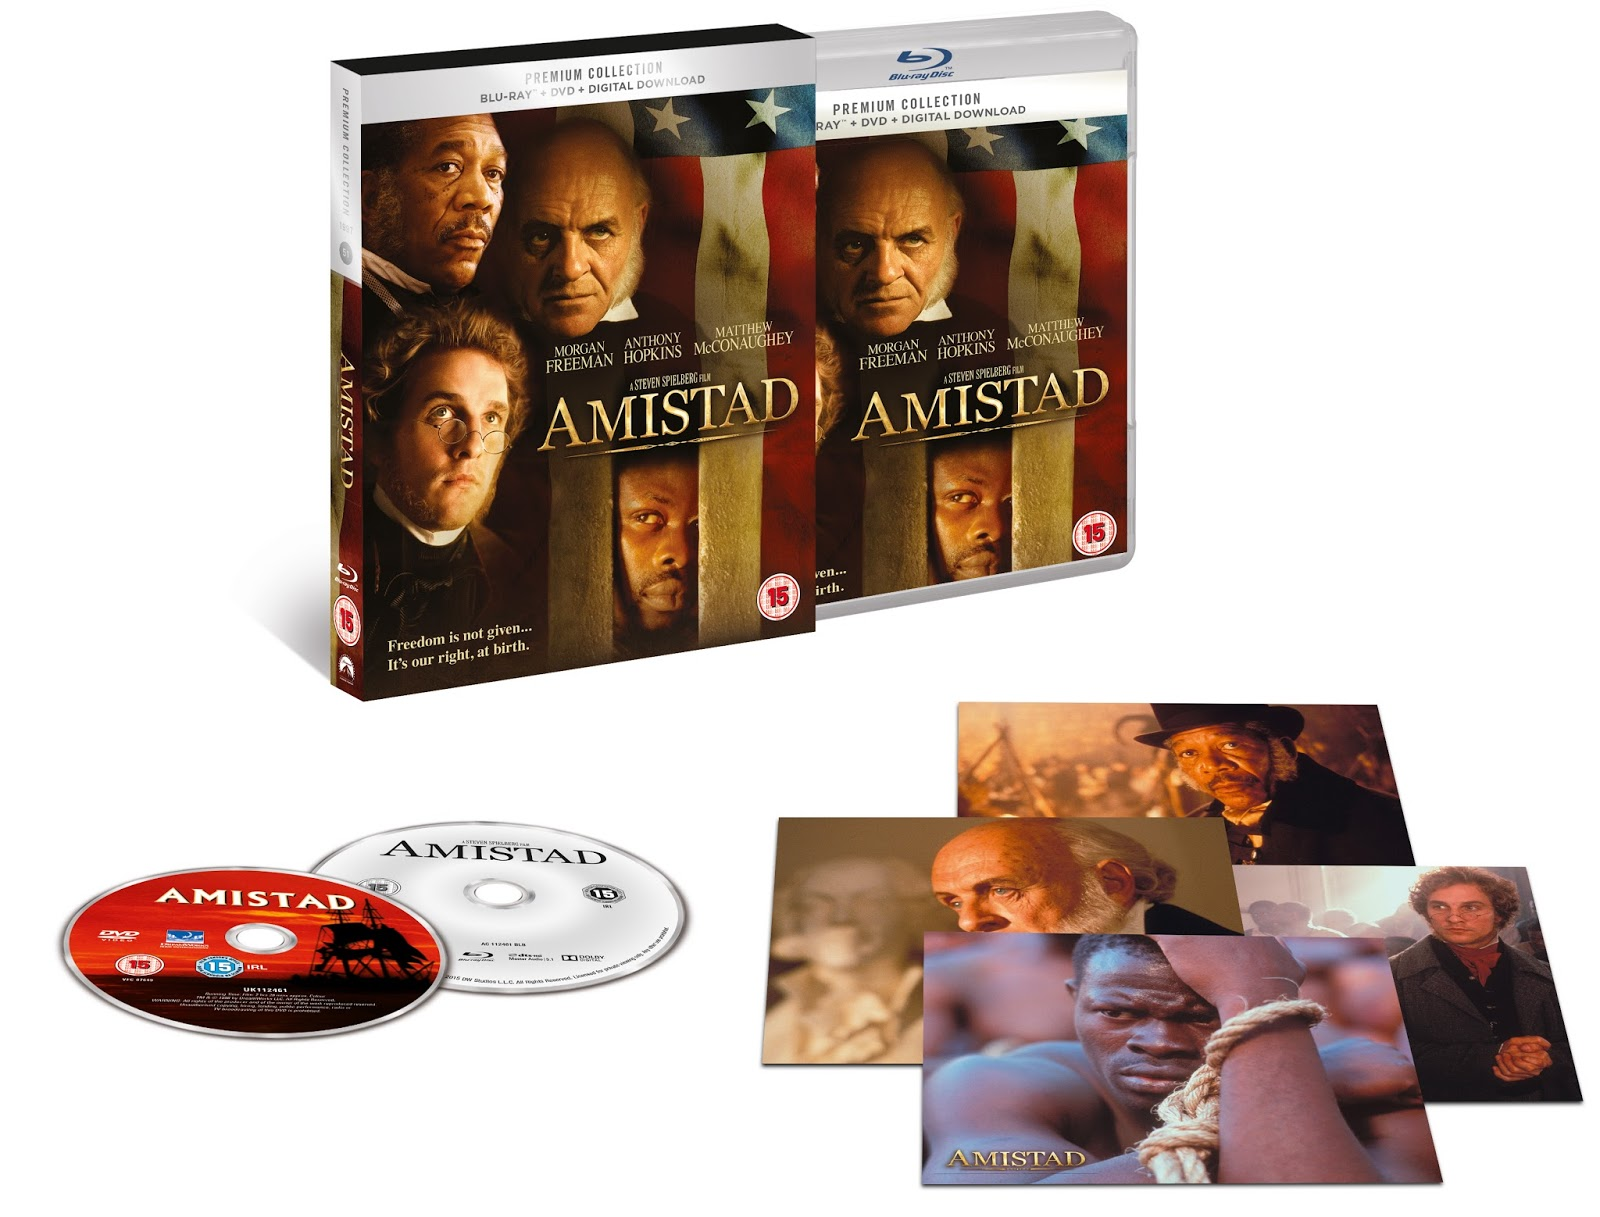 amistad movie review